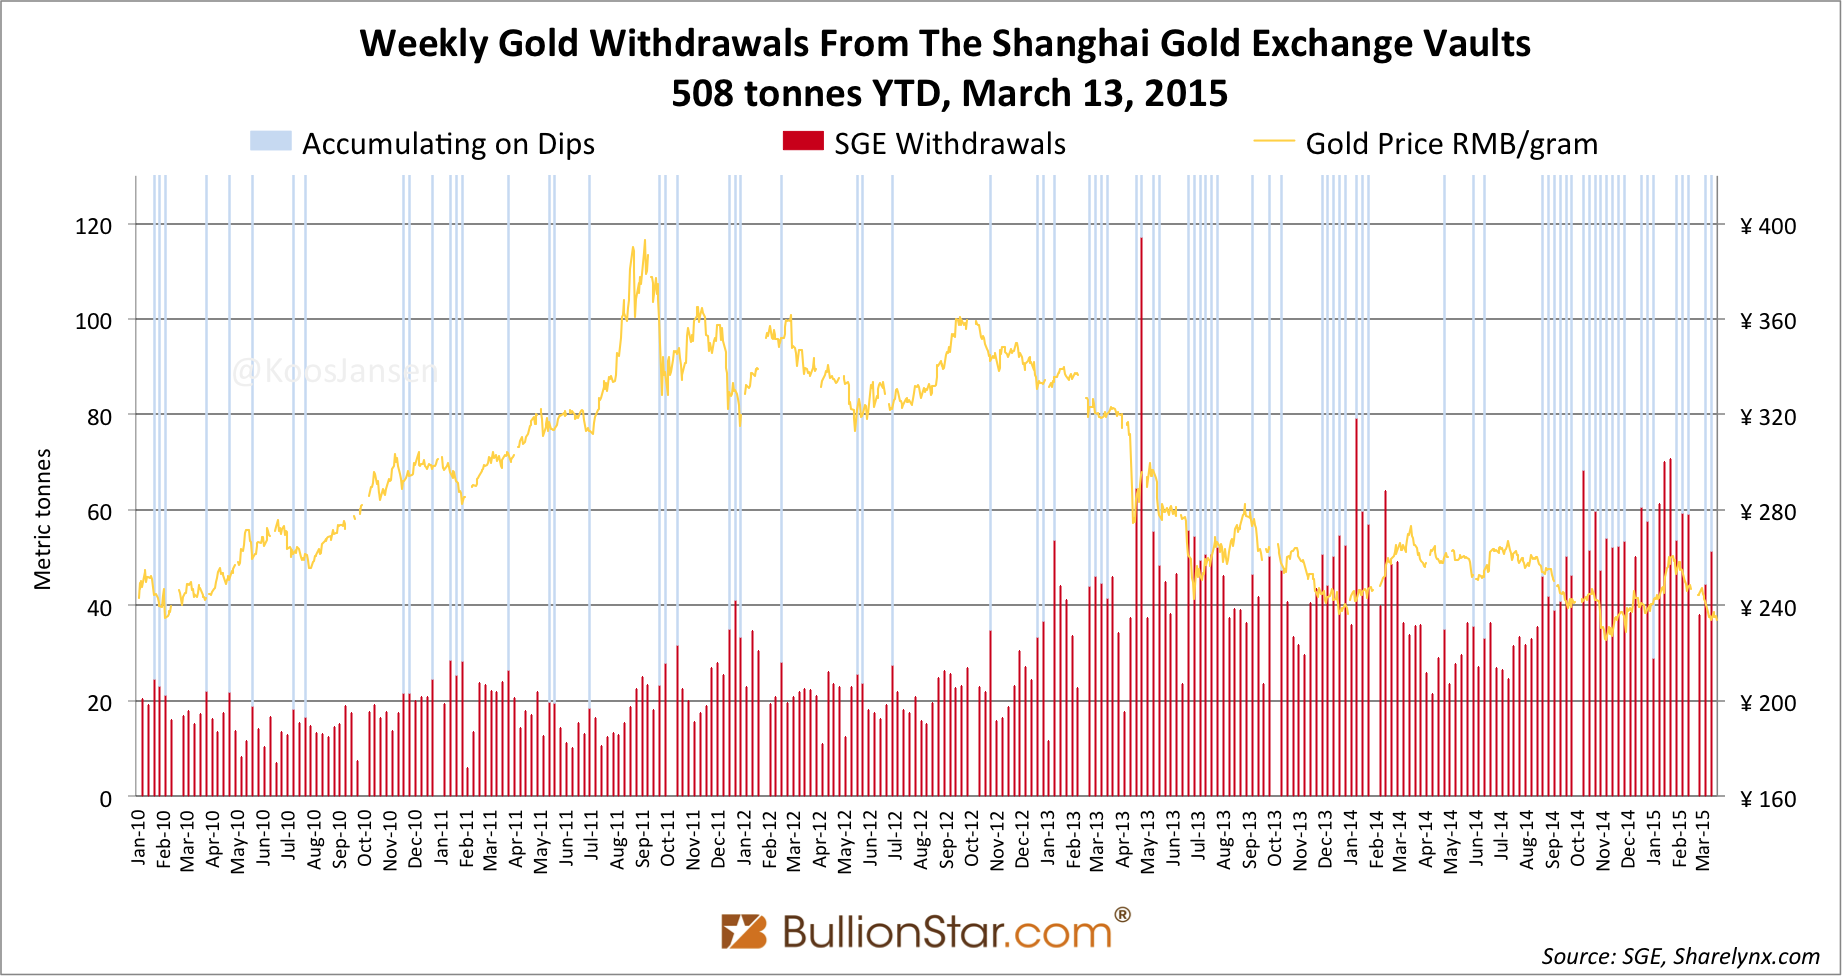 SGE Withdrawals 51t In Week 10, YTD 508t.